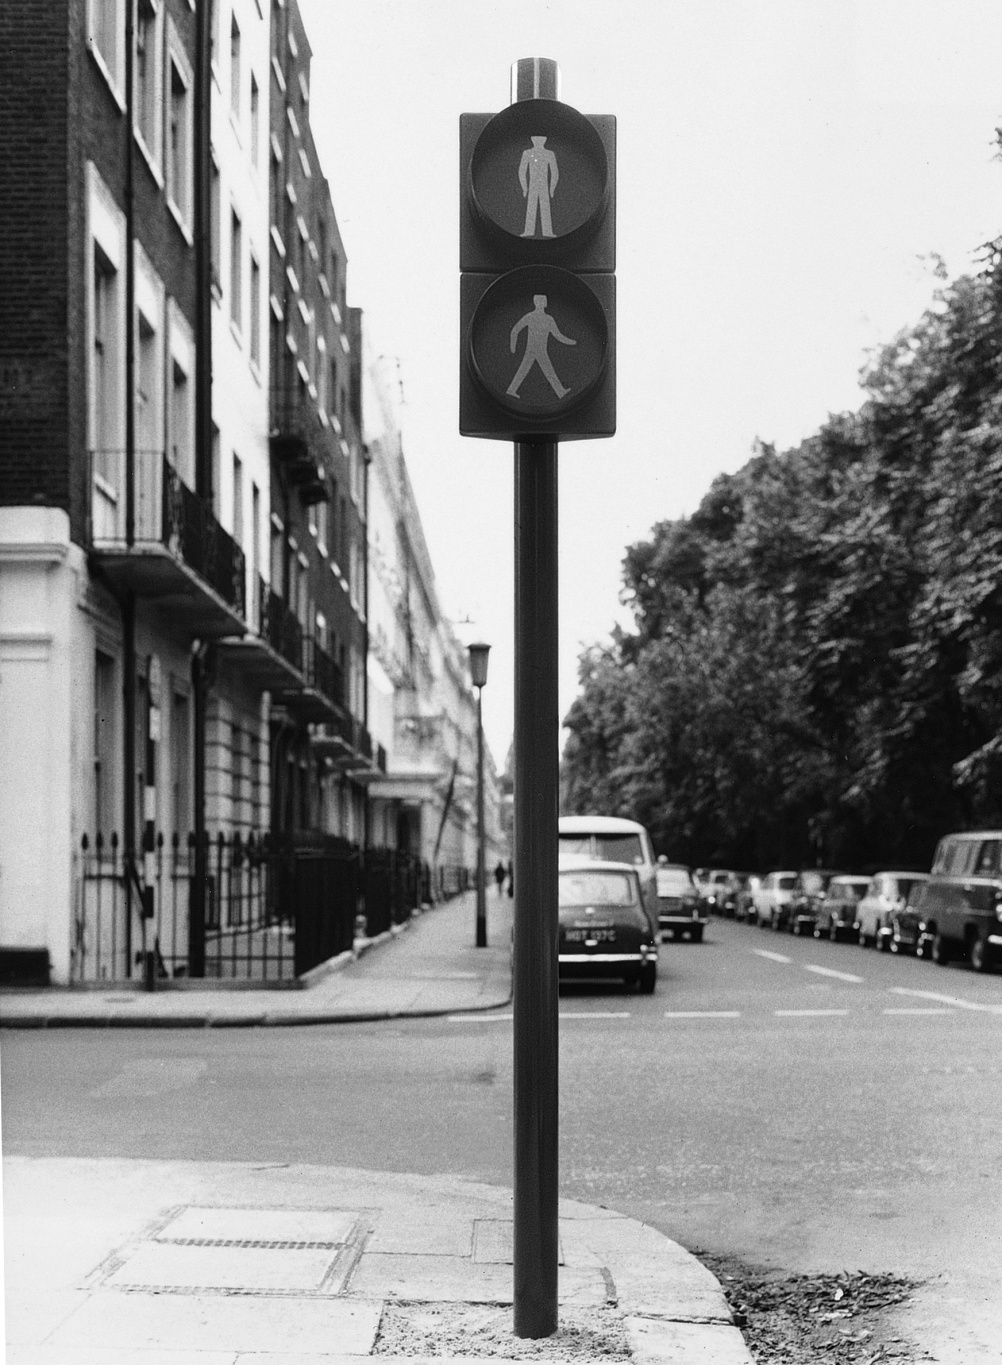 Traffic Light Prototype 1965